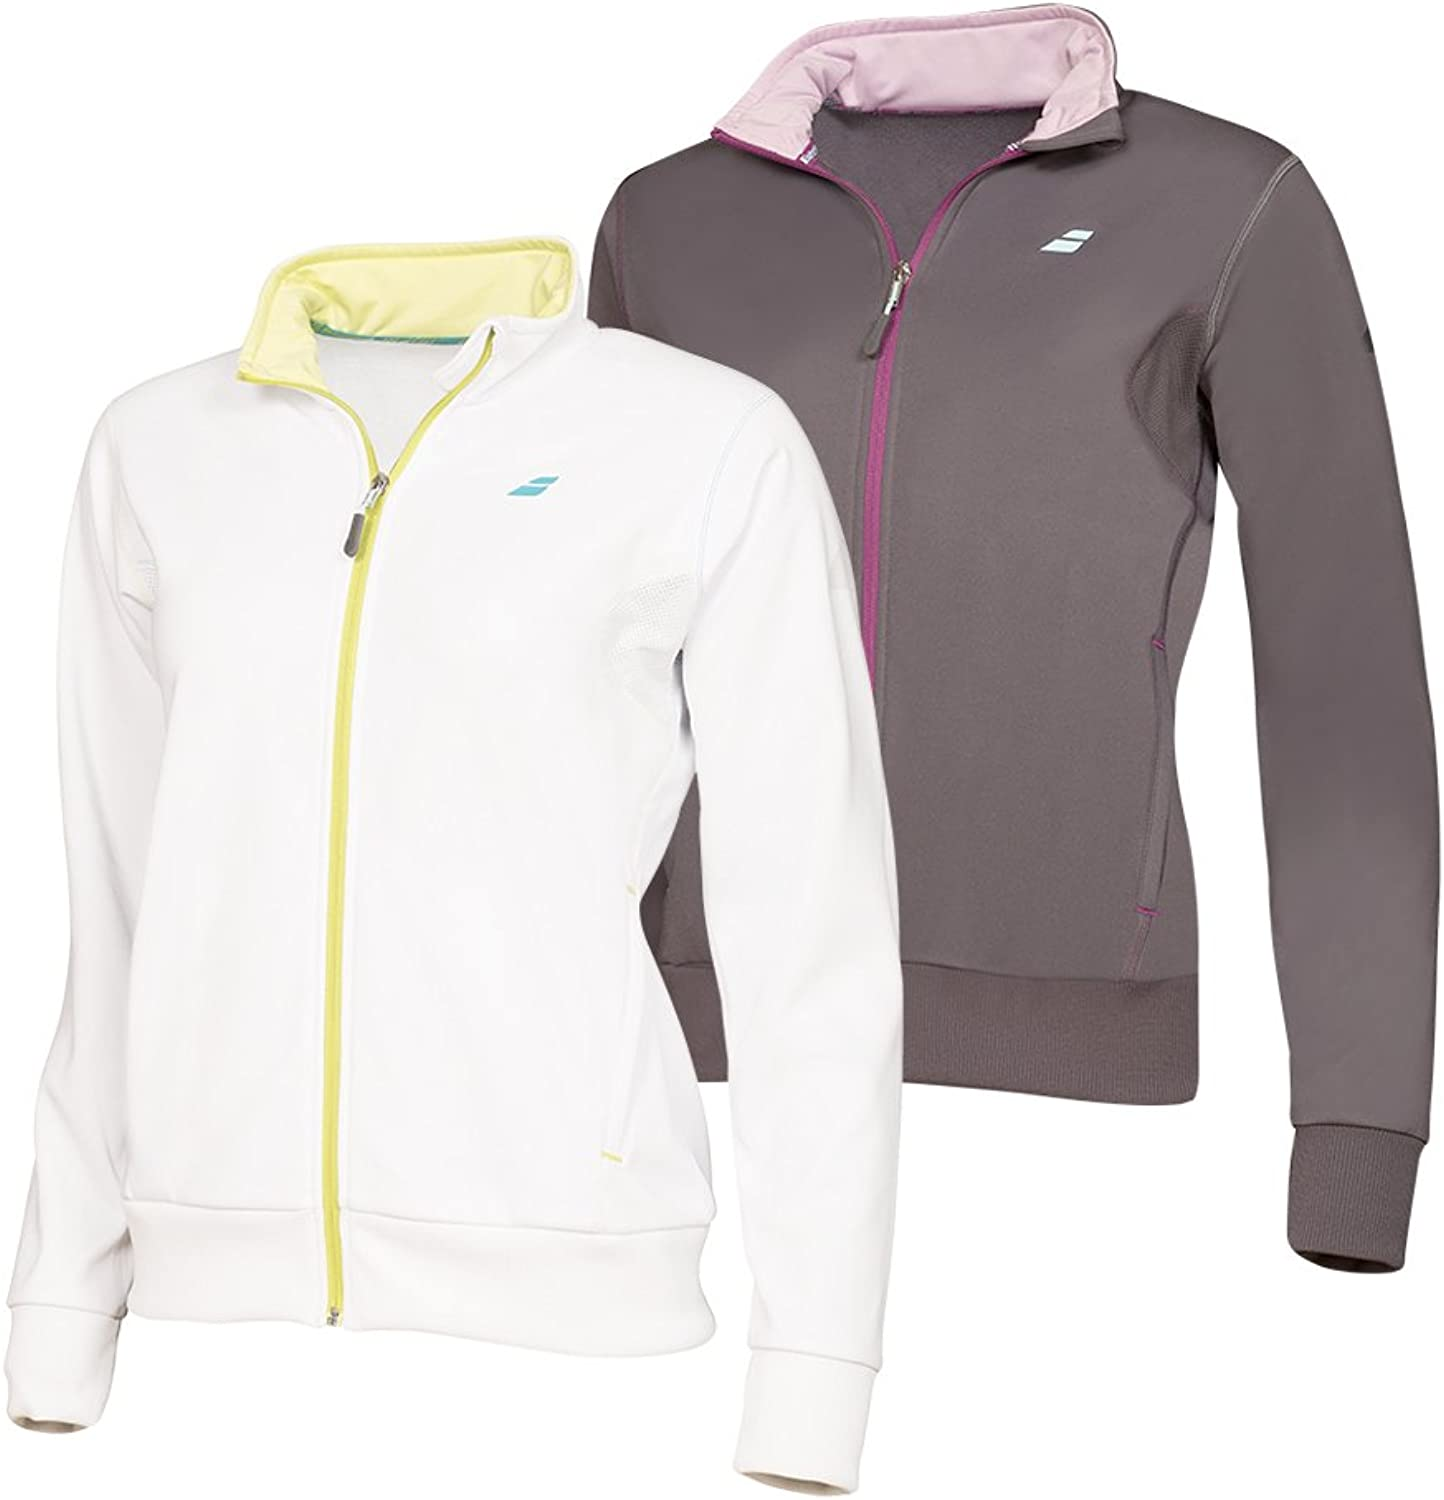 Babolat Damen Performance Jacket damen Jacken B01C6DT55E  Auktion